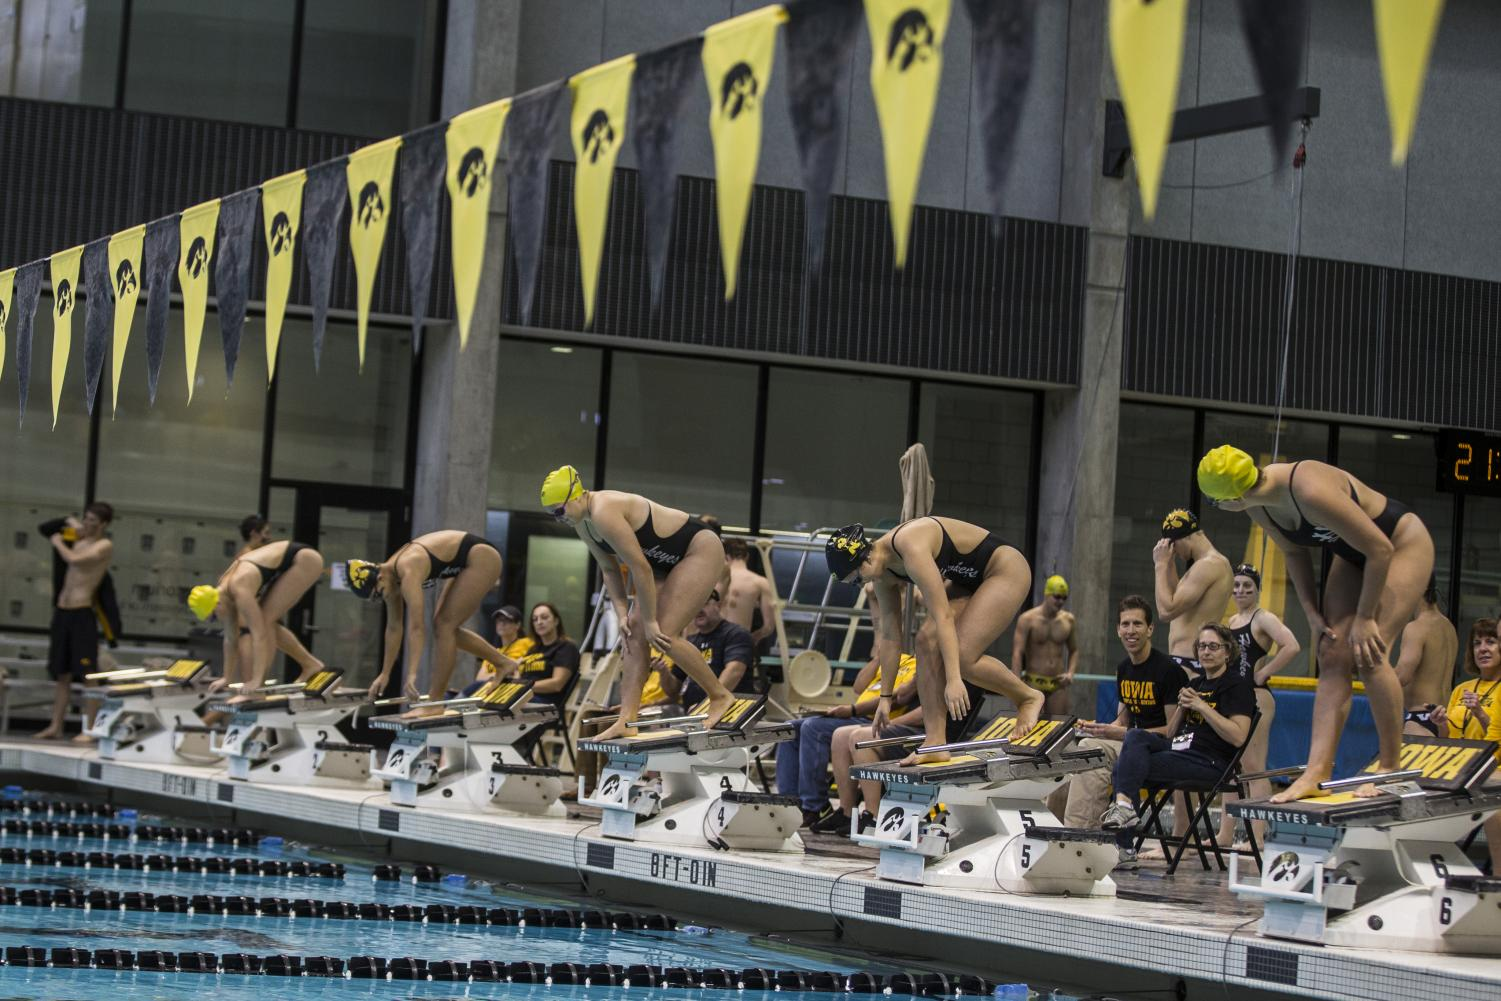 Swimmers line up on the blocks during the Iowa Swimming and Diving Intrasquad Meet at the Campus Recreation and Wellness Center on Saturday, Sept. 29, 2018.